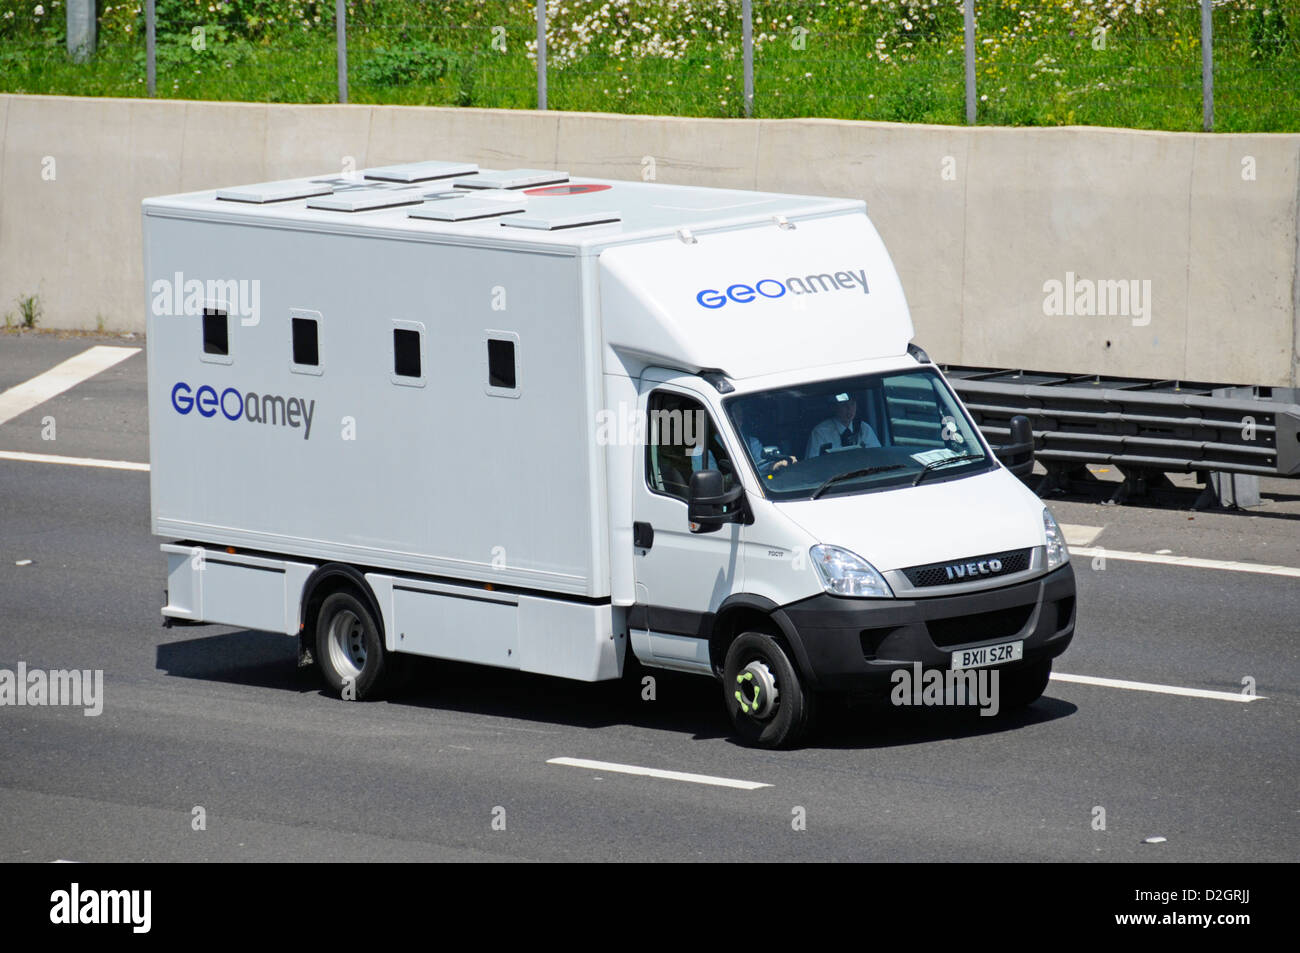 Prison van operated by Geoamey providing prisoner escort and custody services - Stock Image